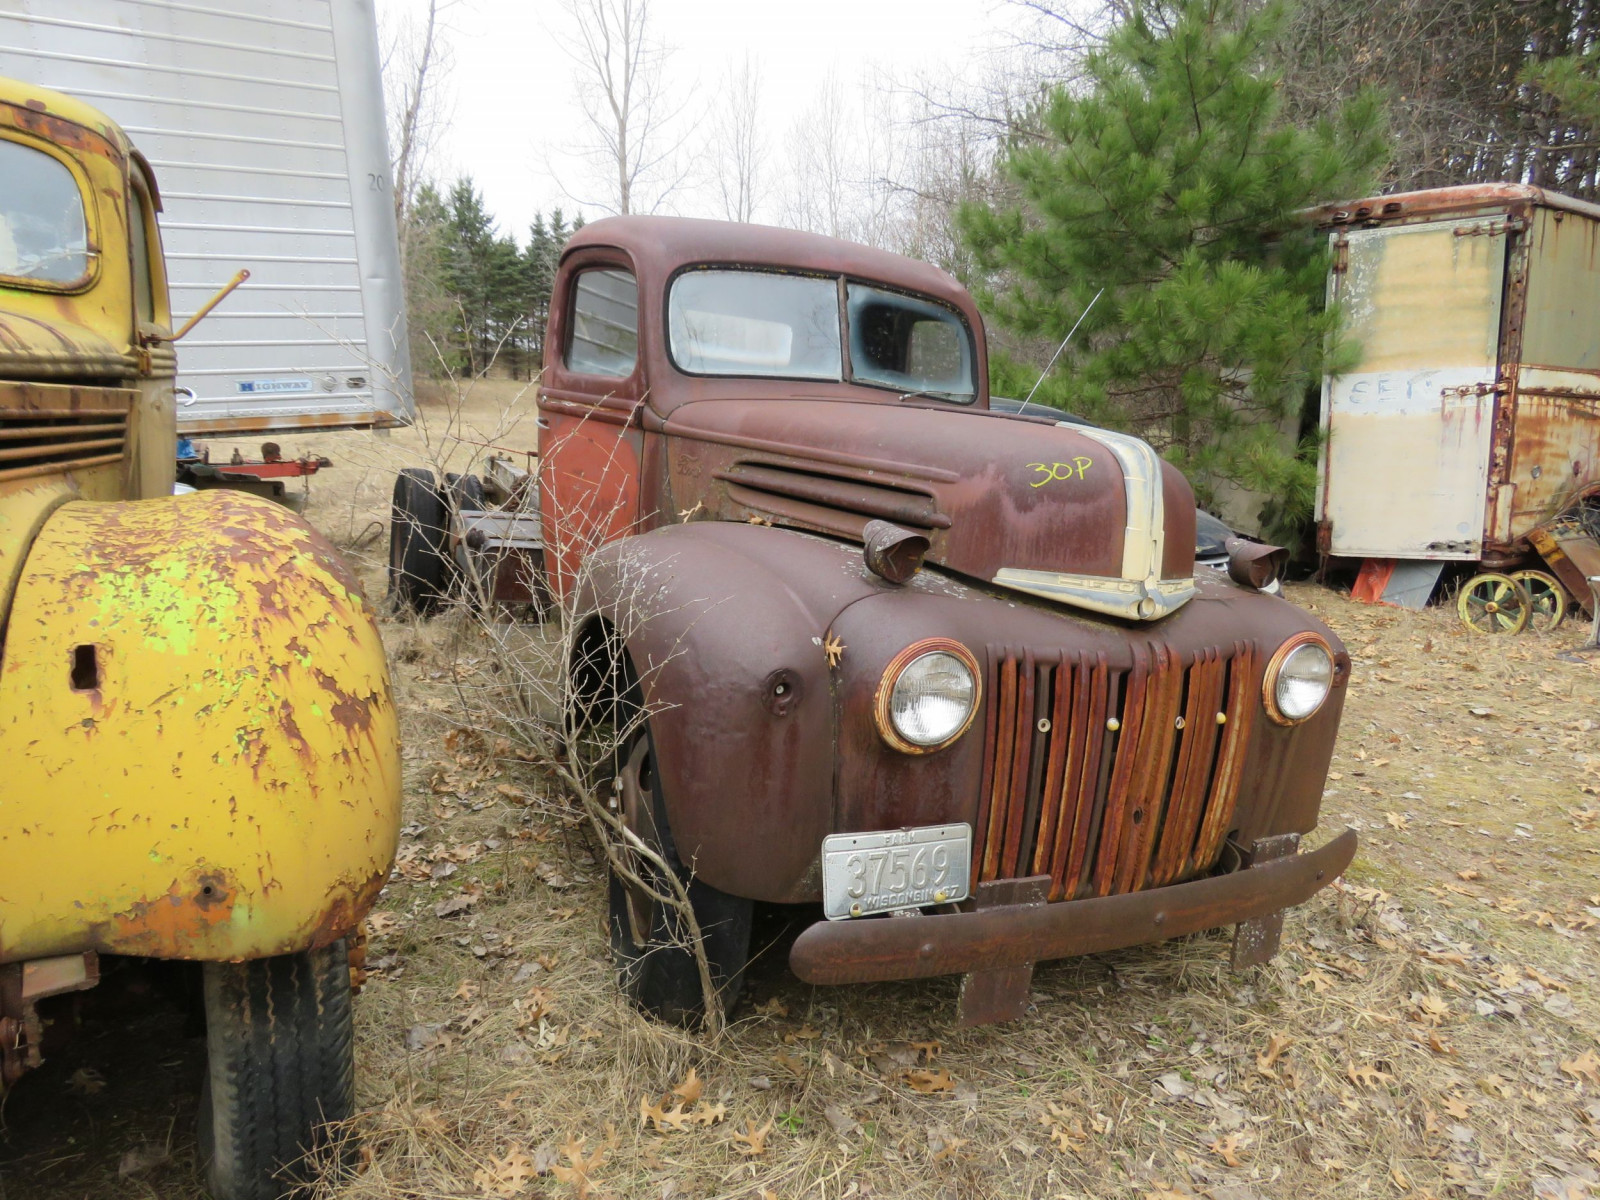 1940's Ford Truck for Rod or Restore - Image 1